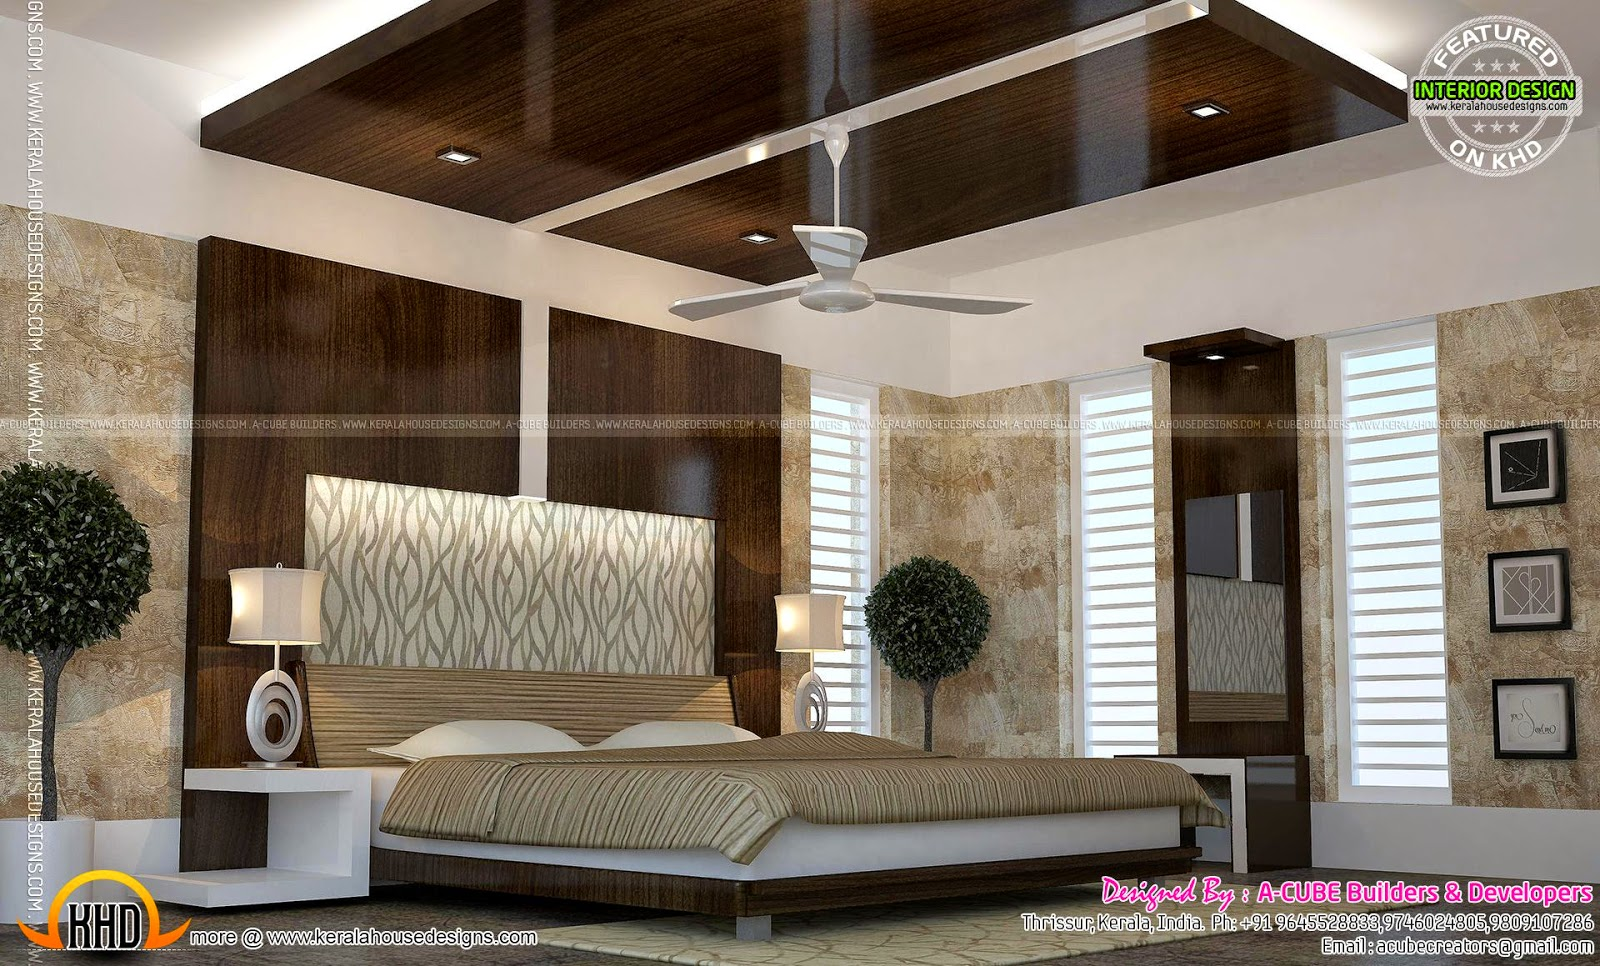 kerala interior design ideas kerala home design and floor plans. Black Bedroom Furniture Sets. Home Design Ideas